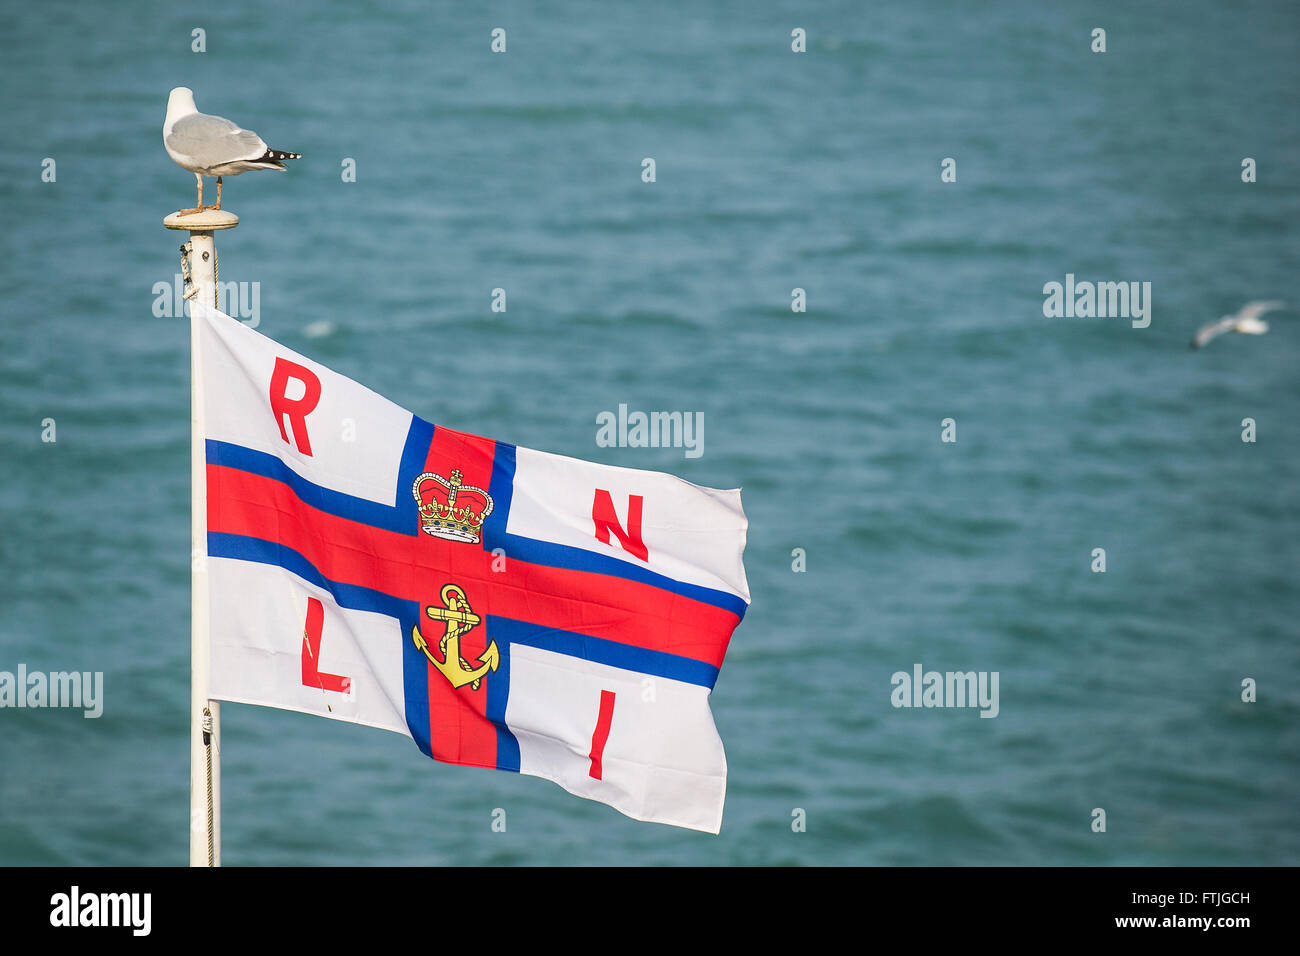 The flag of the RNLI. - Stock Image